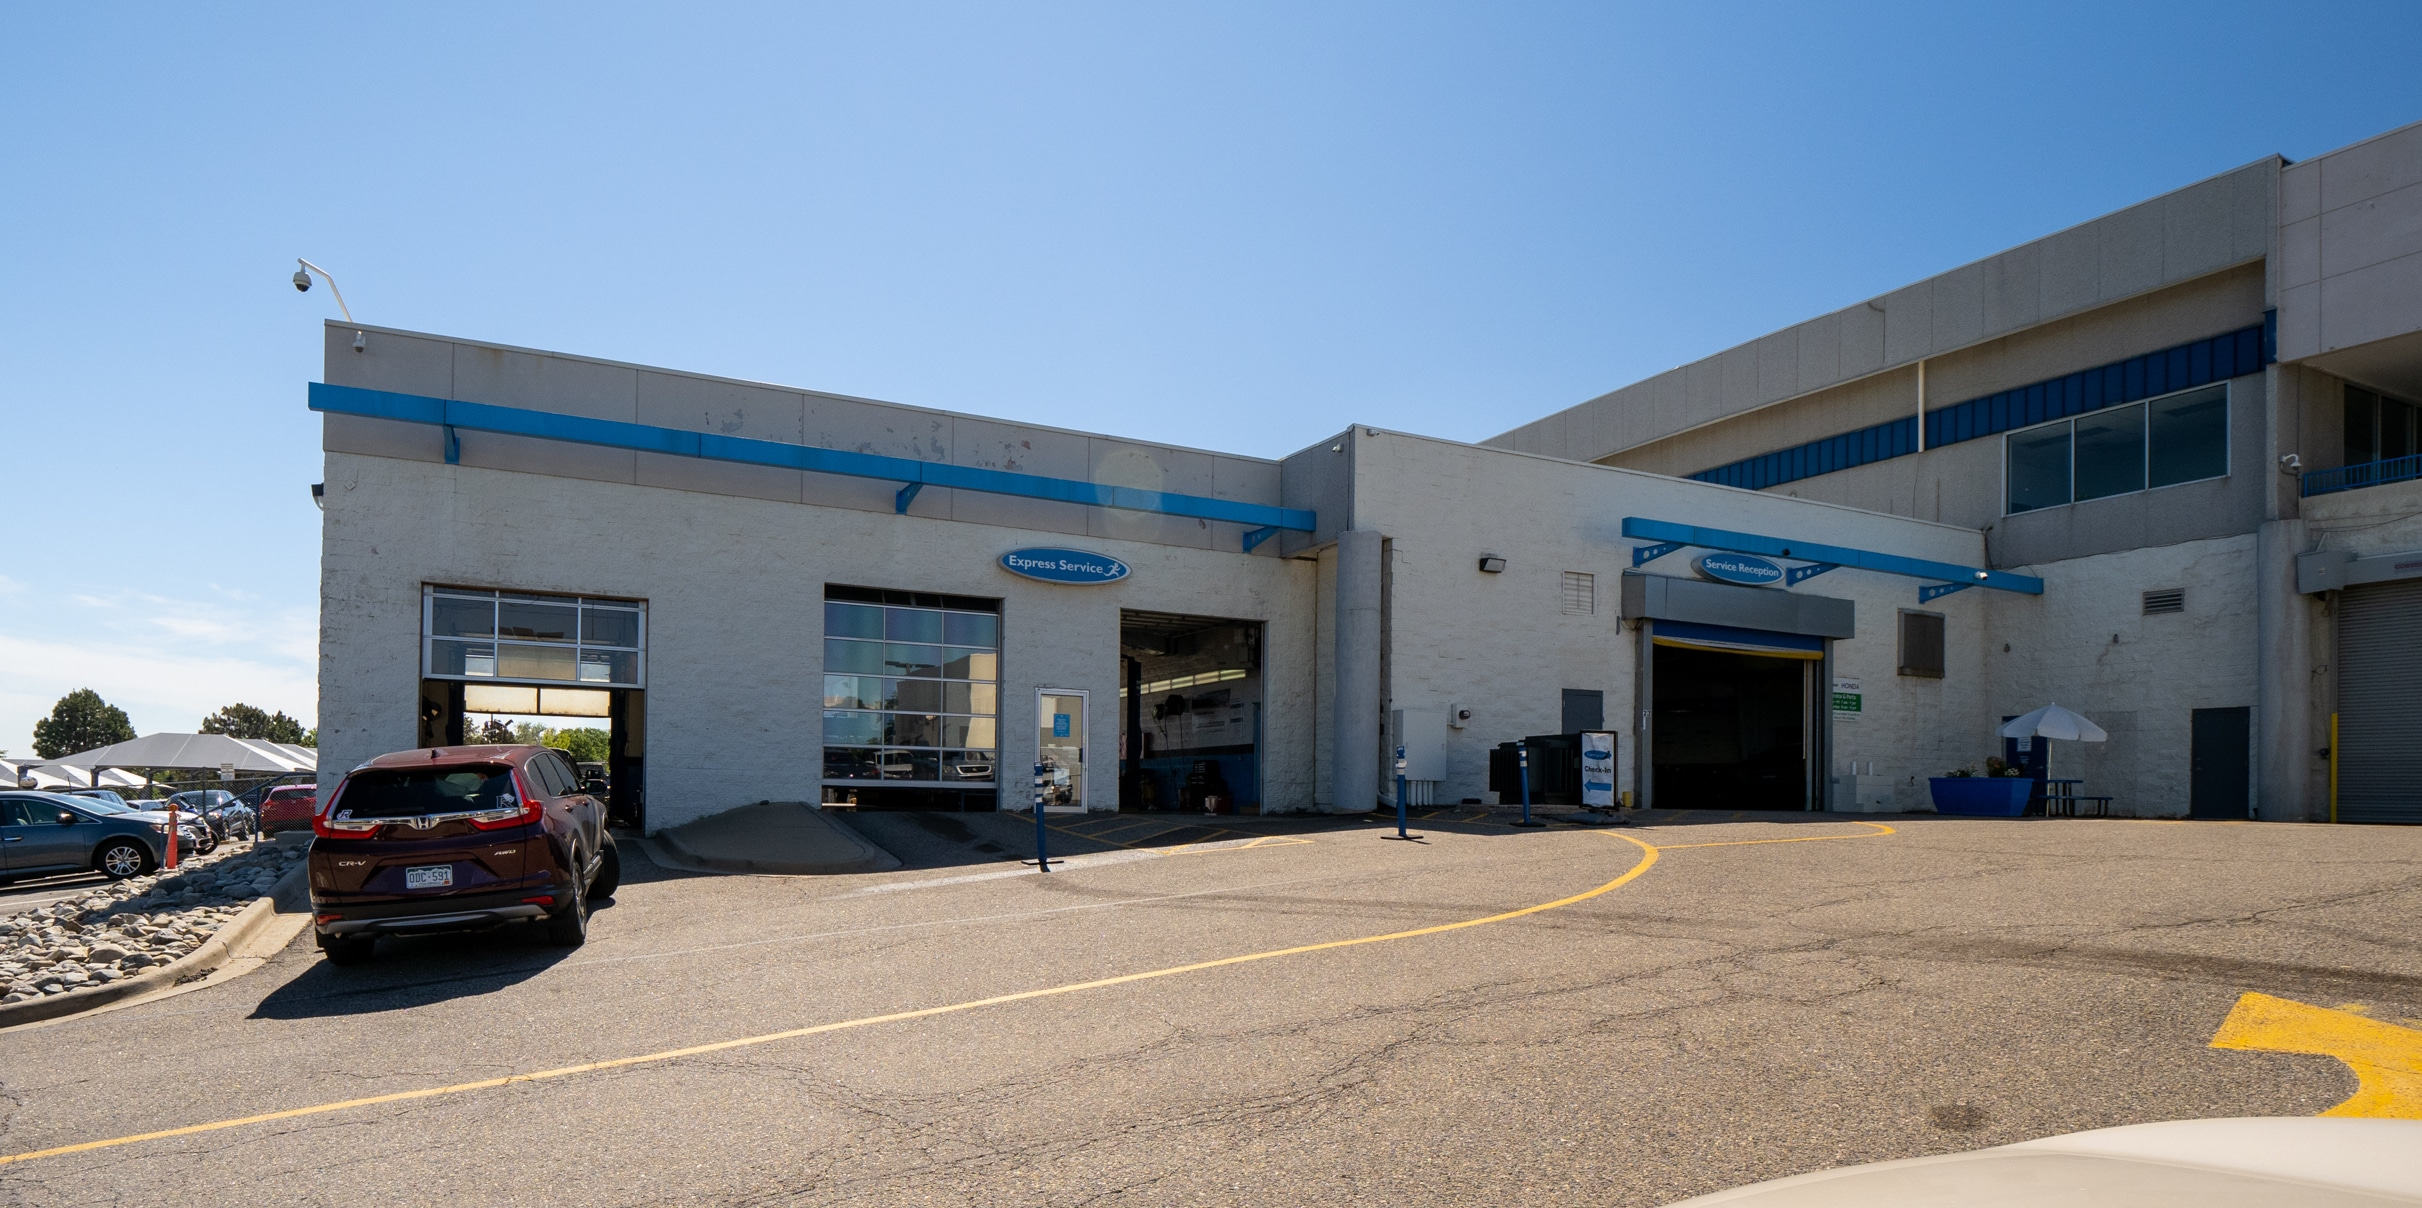 Exterior view of AutoNation Honda 104